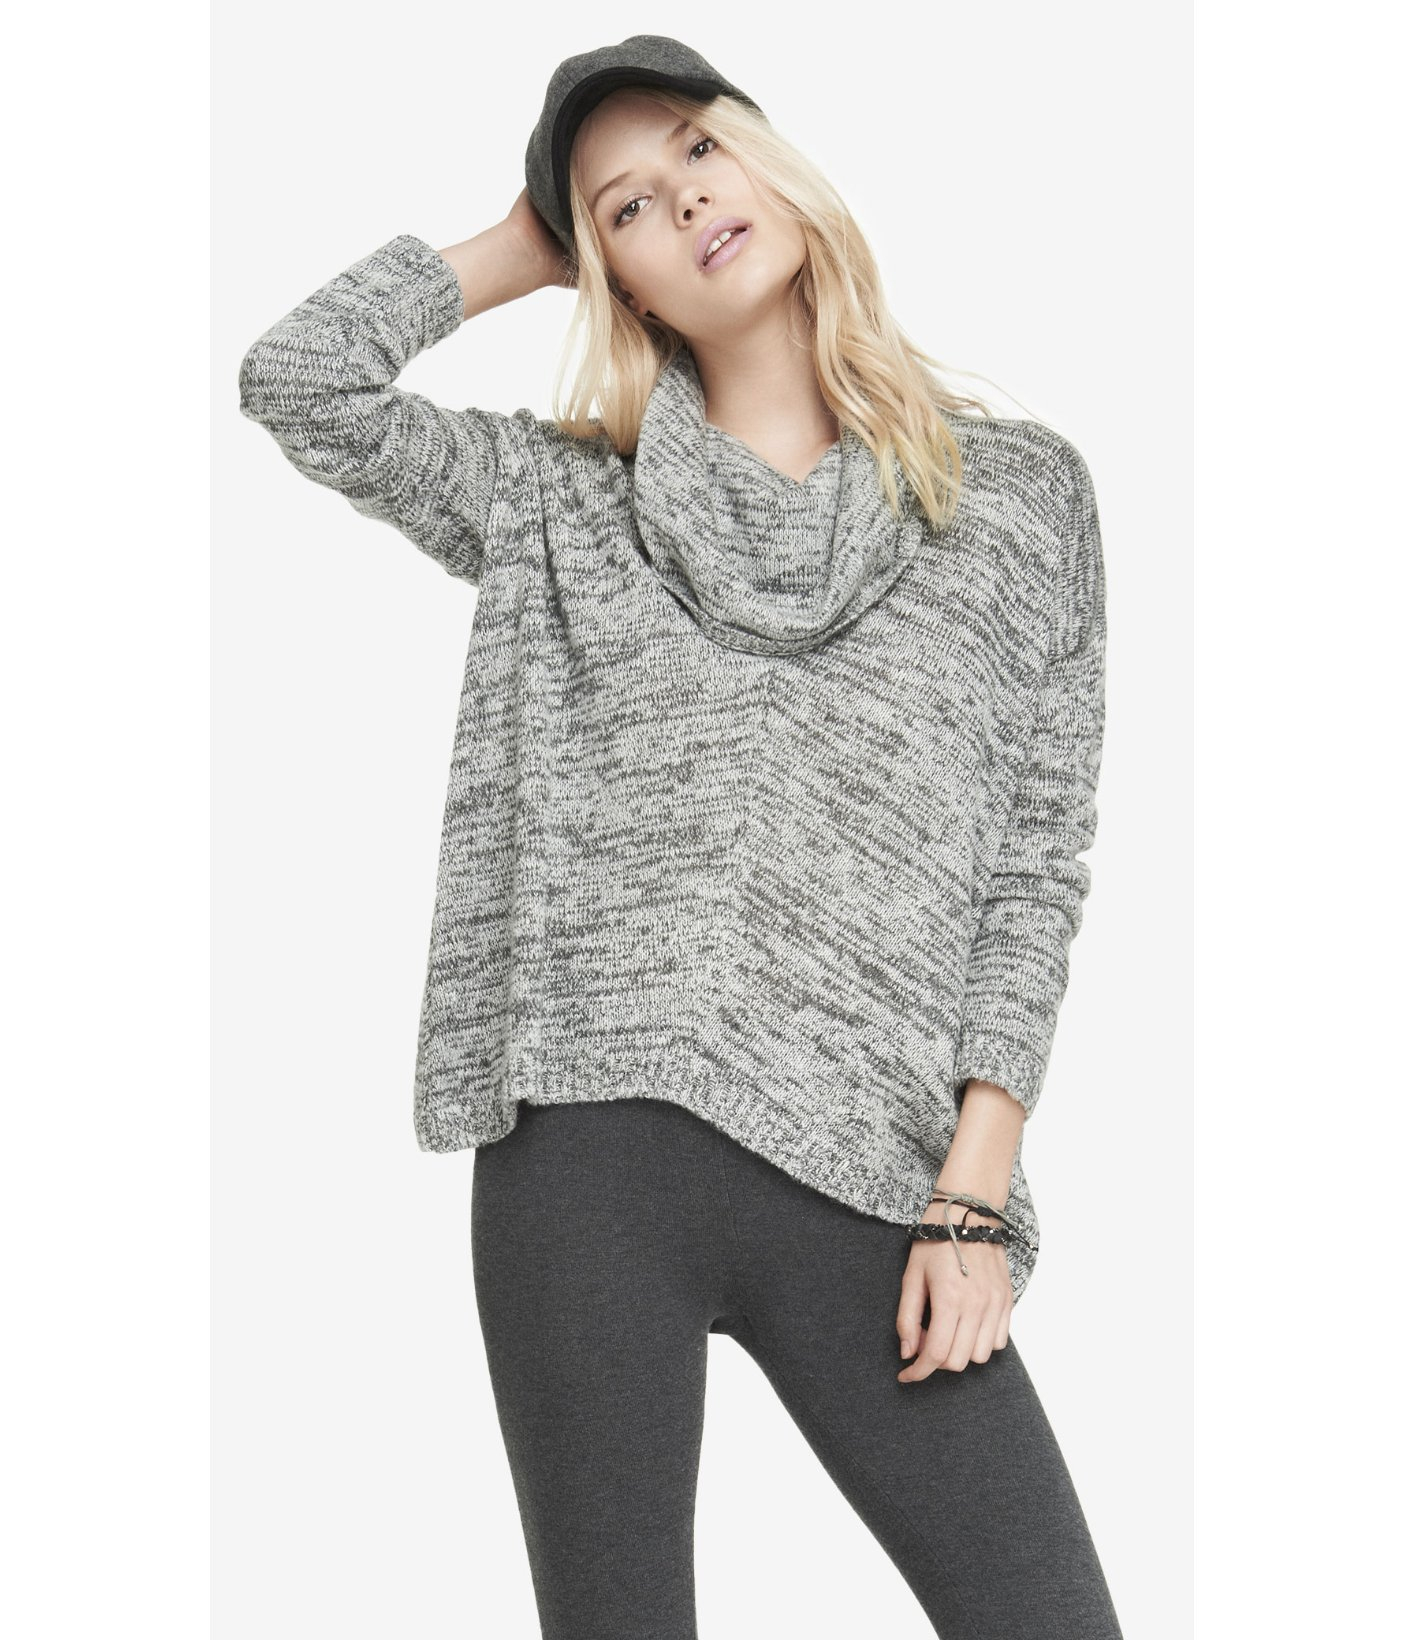 986bf8a4664 Express Oversized Marled Cowl Neck Sweater in Gray - Lyst